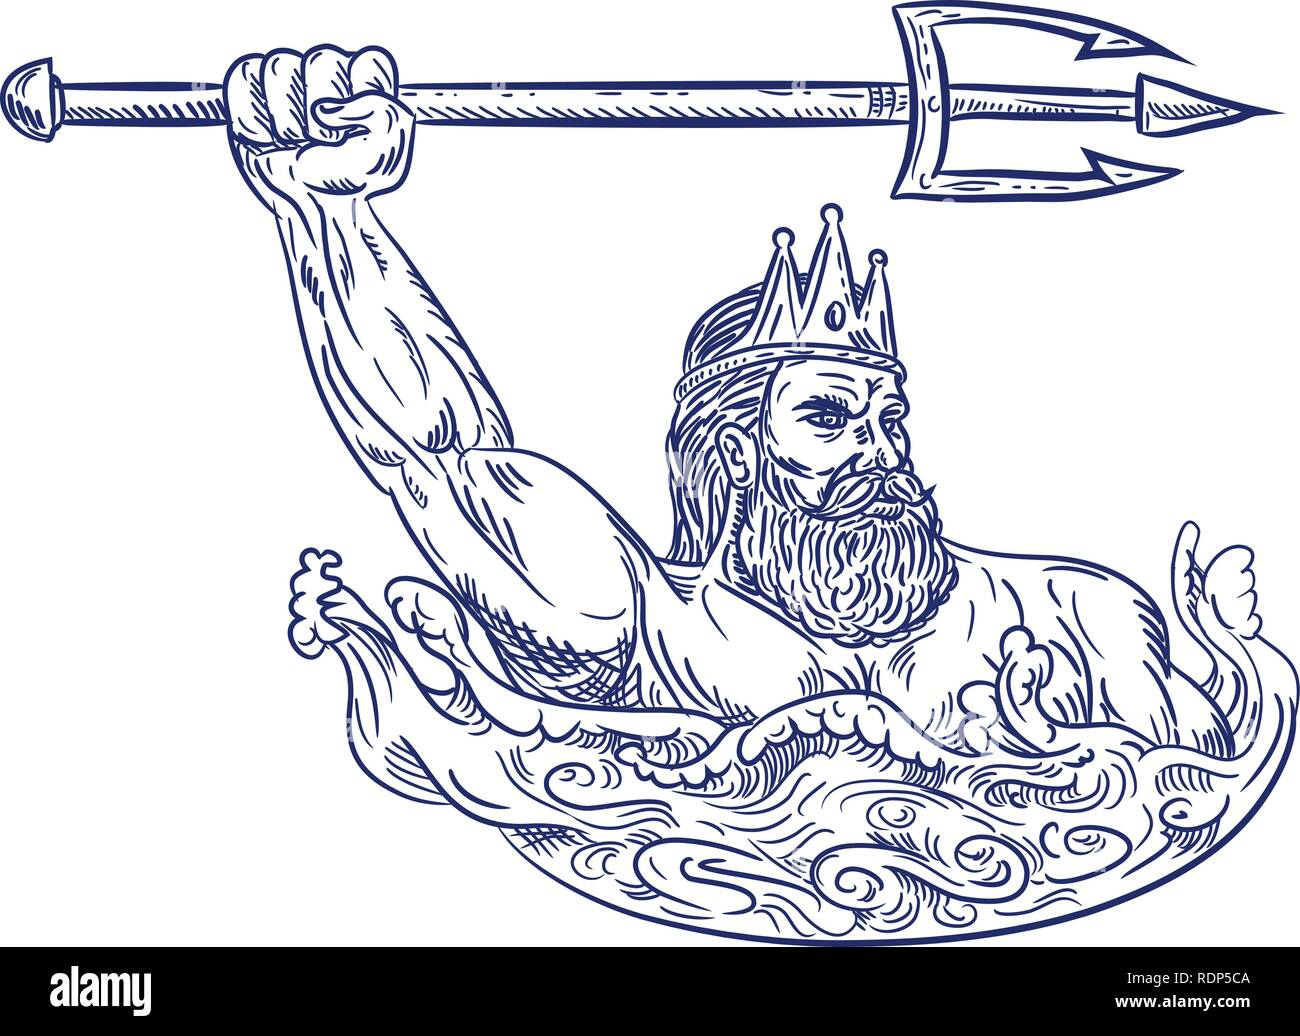 Drawing Sketch Style Illustration Of Triton A Greek God